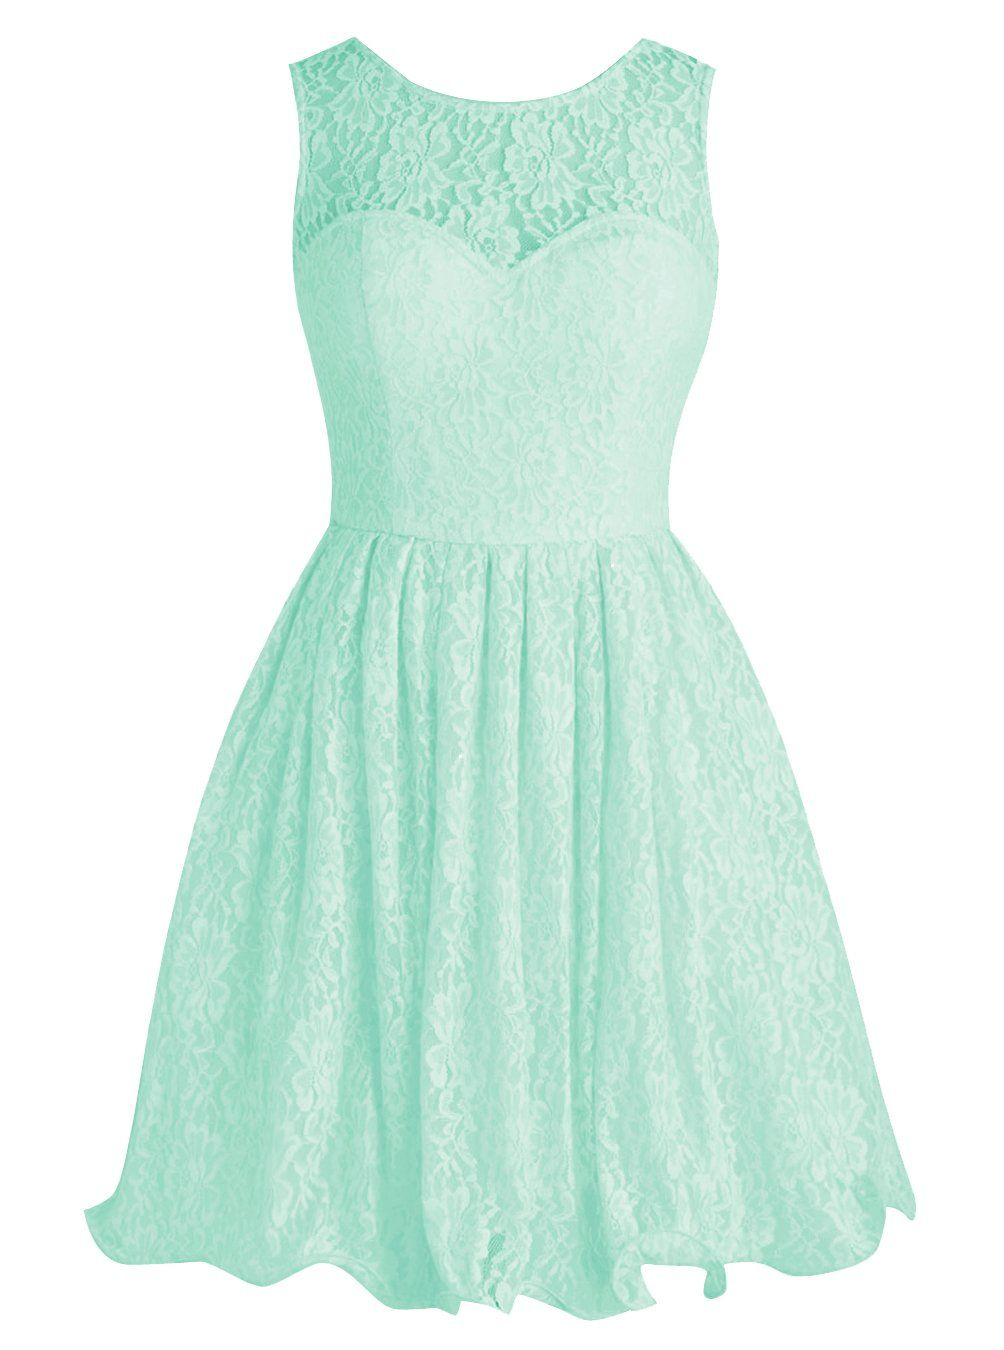 Mint green dress prom  Tideclothes Short Lace Bridesmaid Dress Cute Bowtie Prom Evening